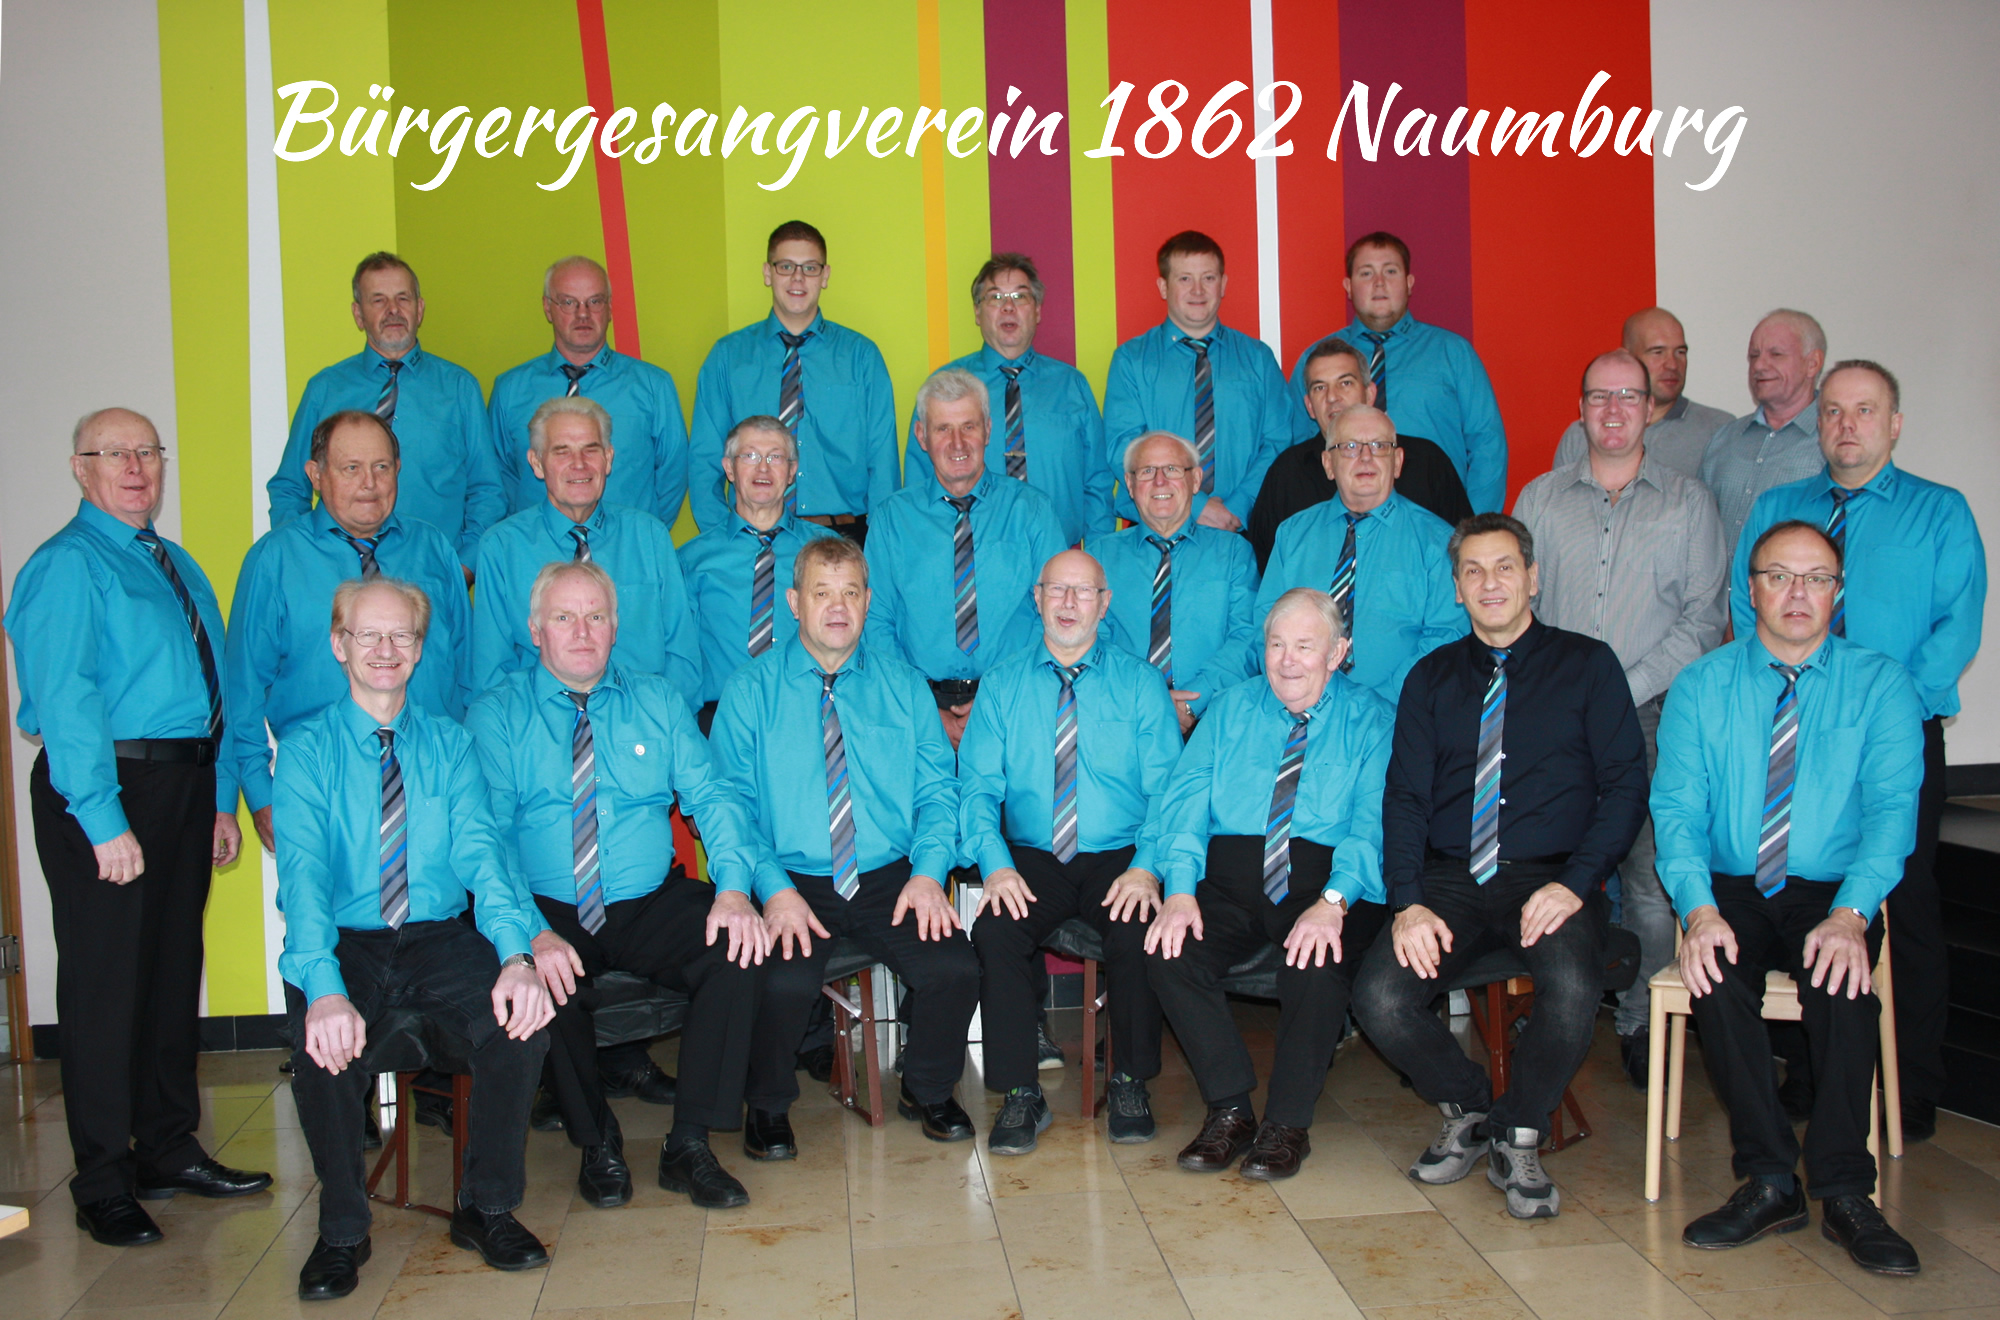 Bürgregesangverein 1862 Naumburg